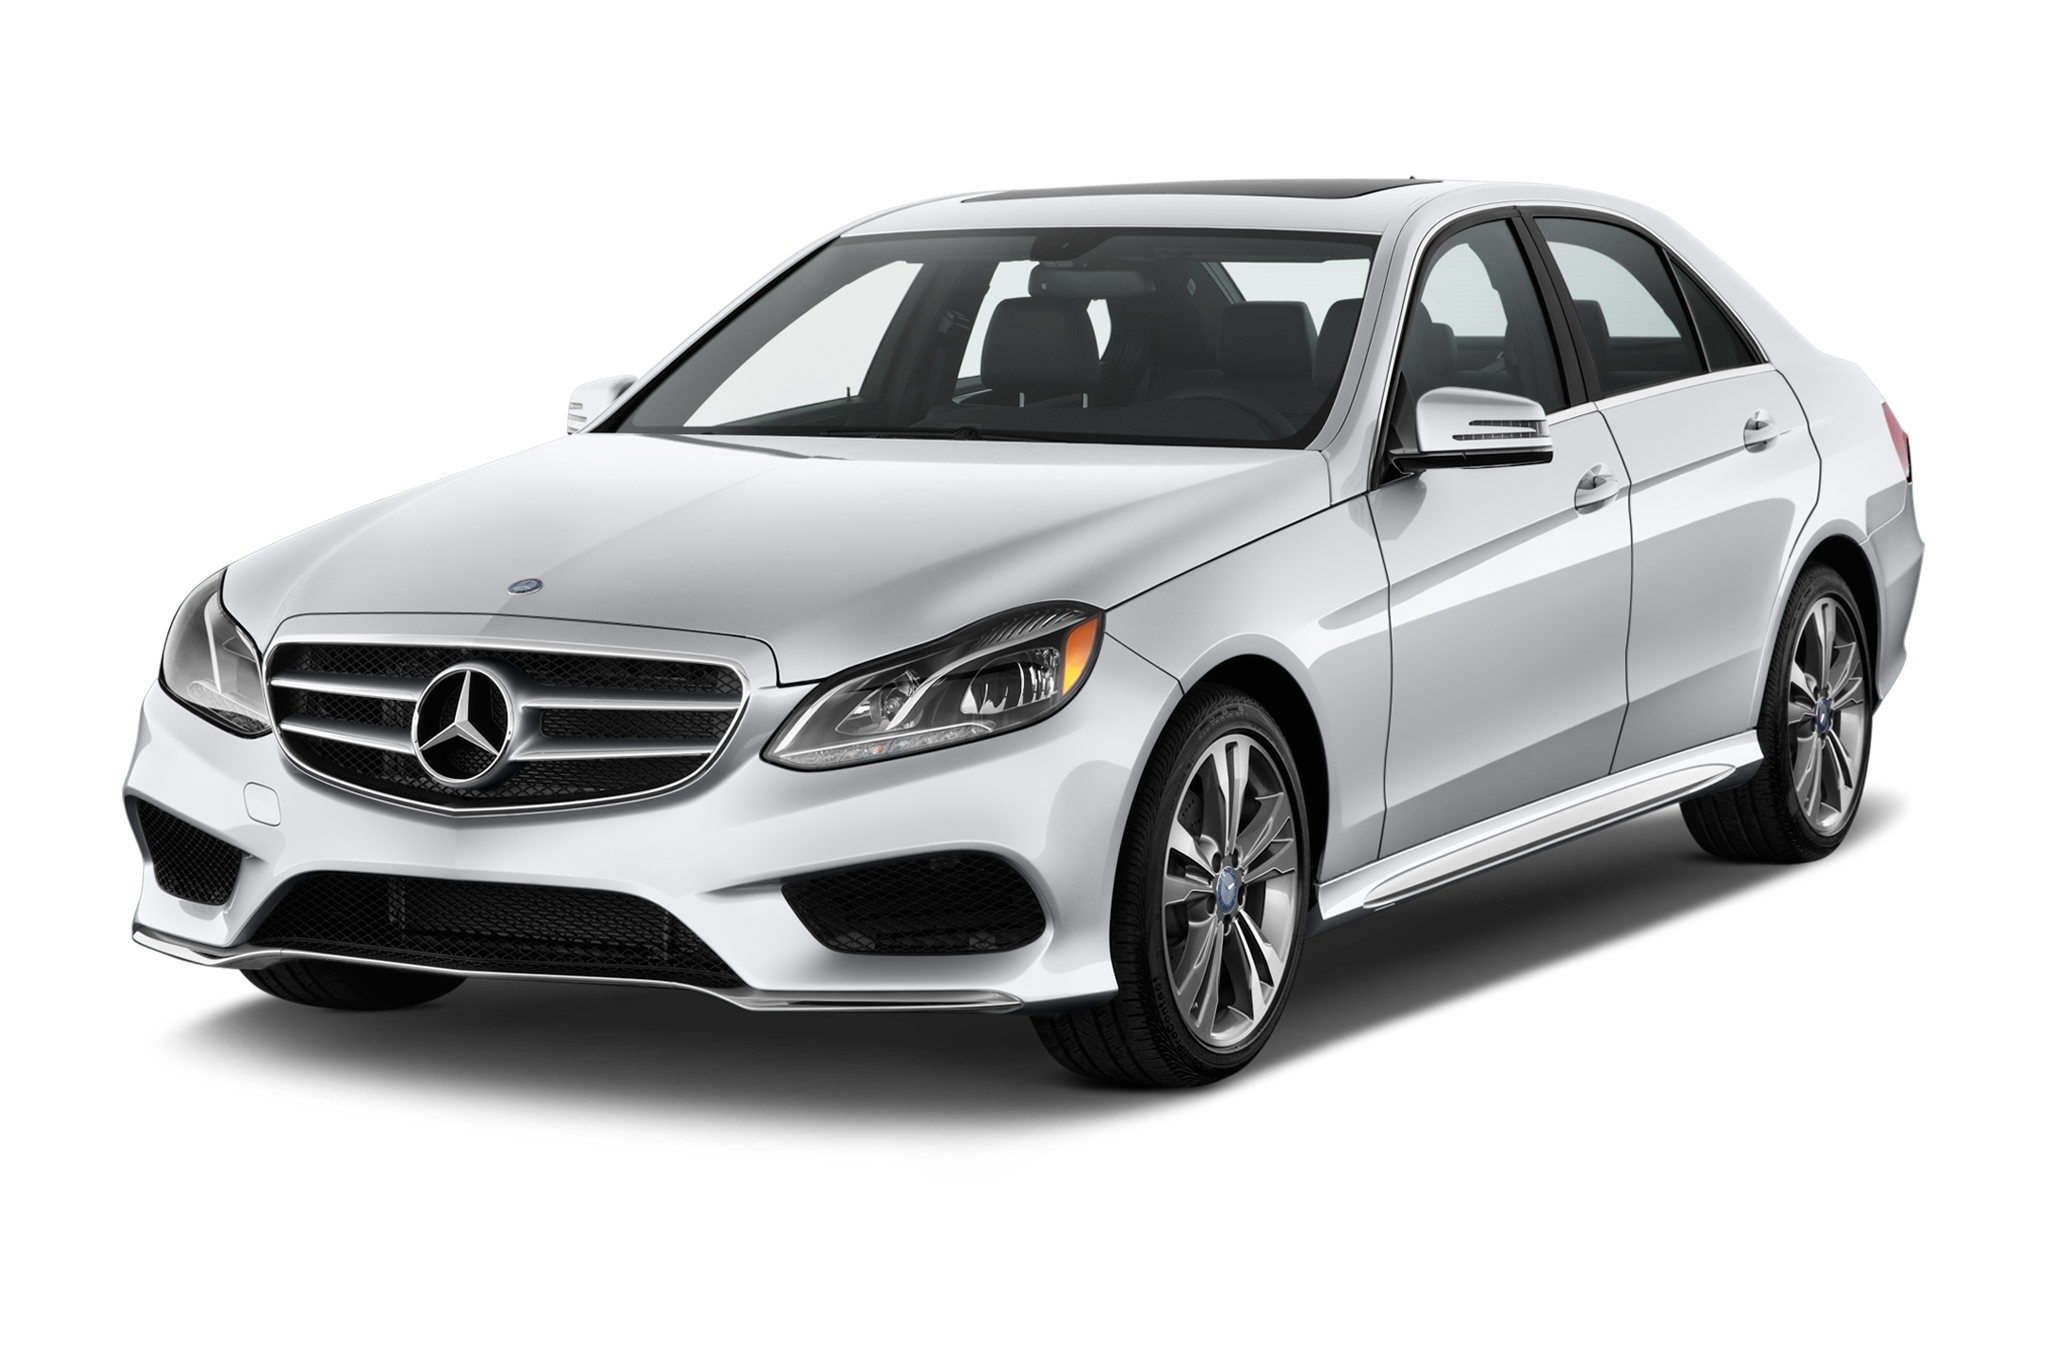 2015 mercedes benz e250 bluetec review for Mercedes benz e class e350 bluetec